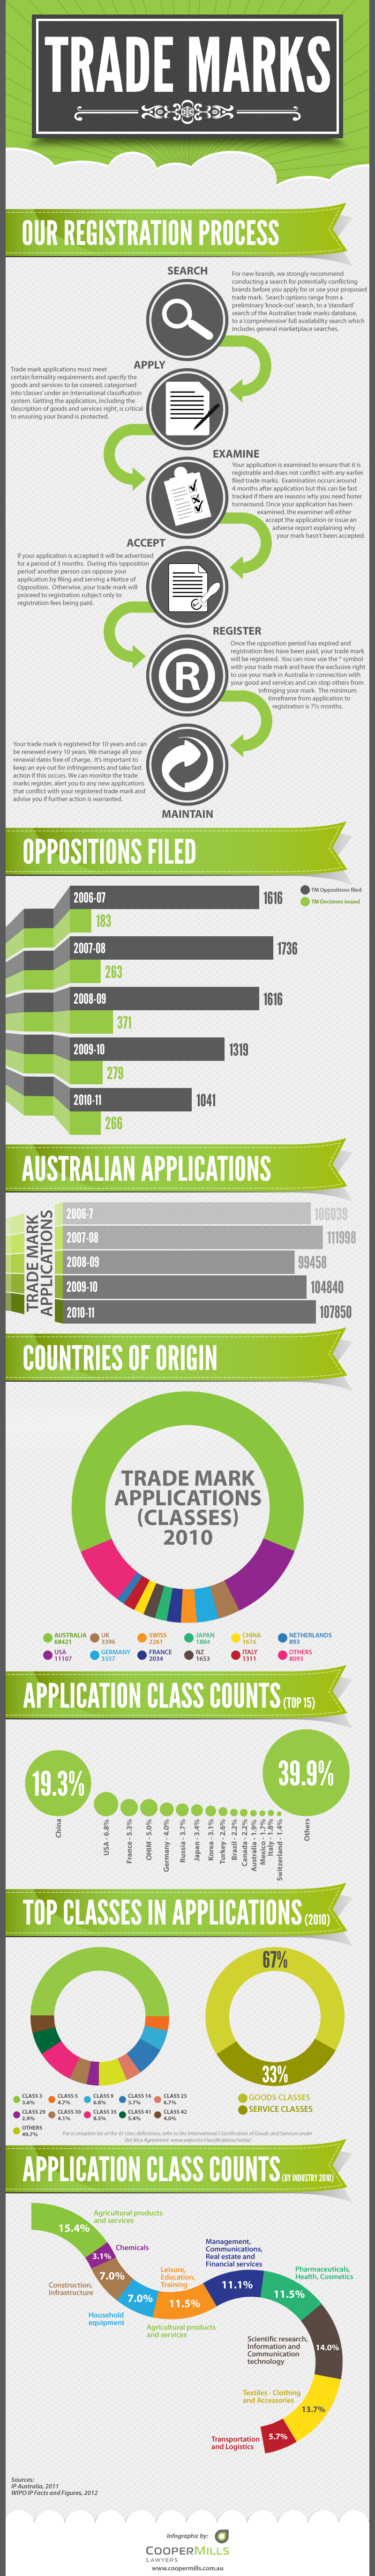 TRADEMARK_INFOGRAPHIC_V3.0_26092012.png